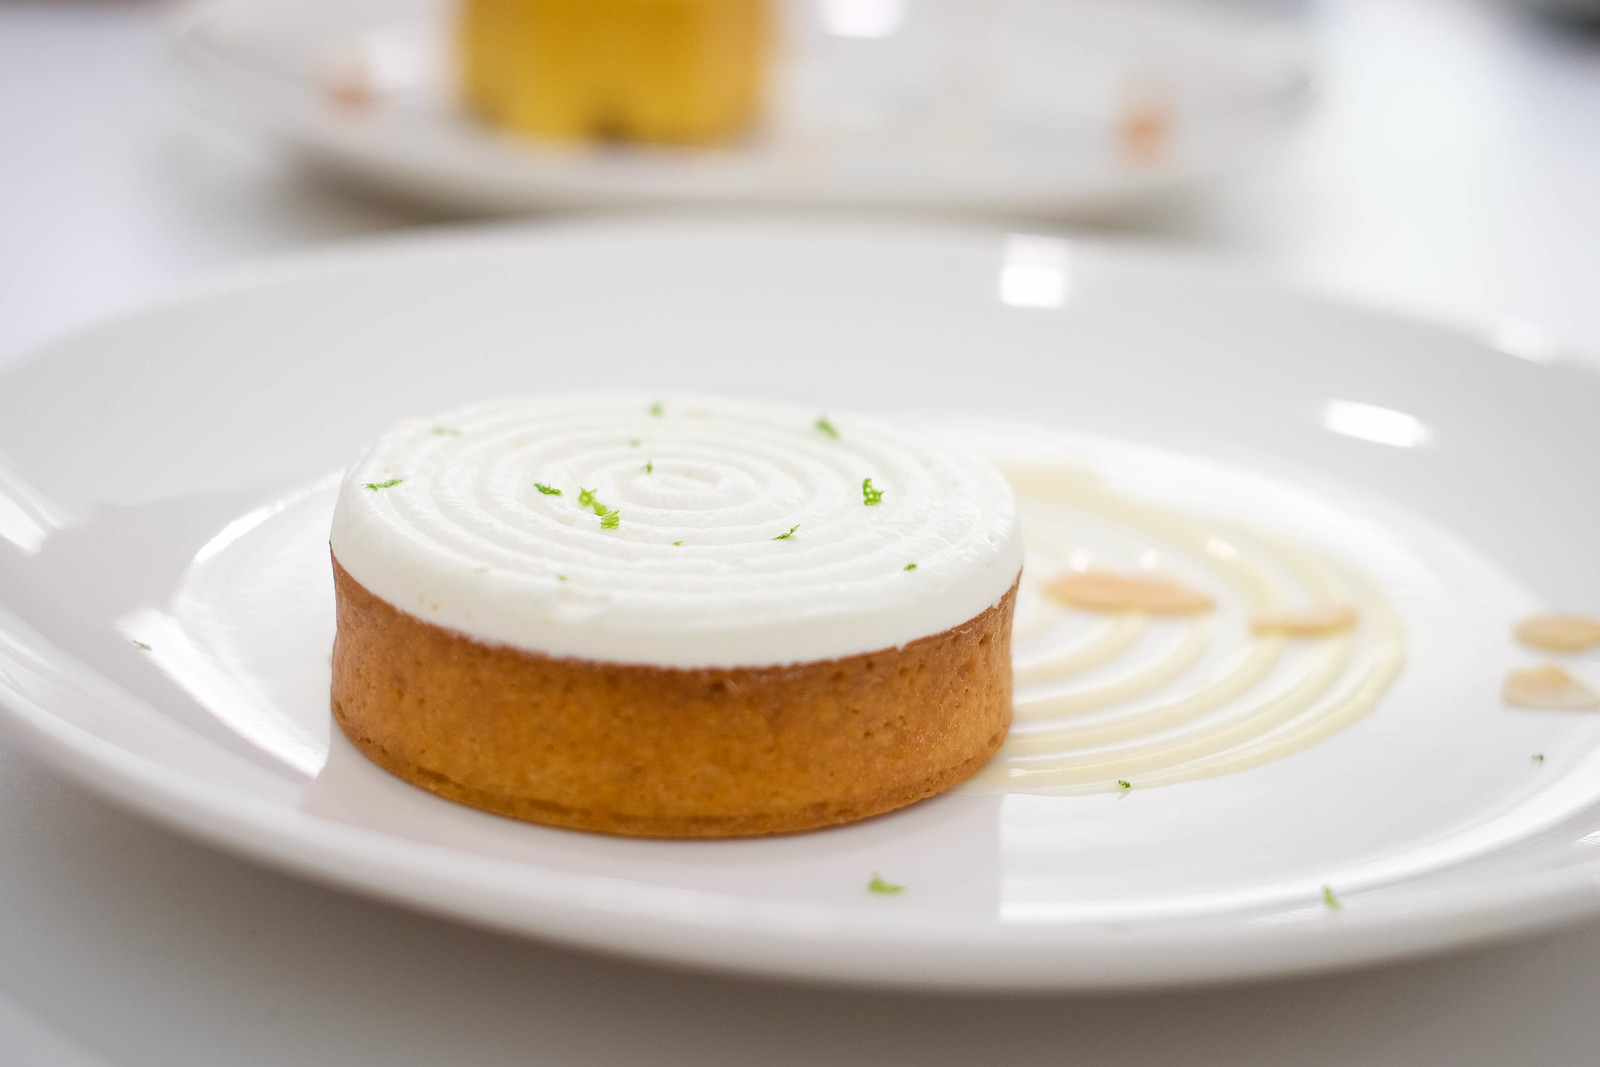 Lemon Tart from Lee's Confectionery